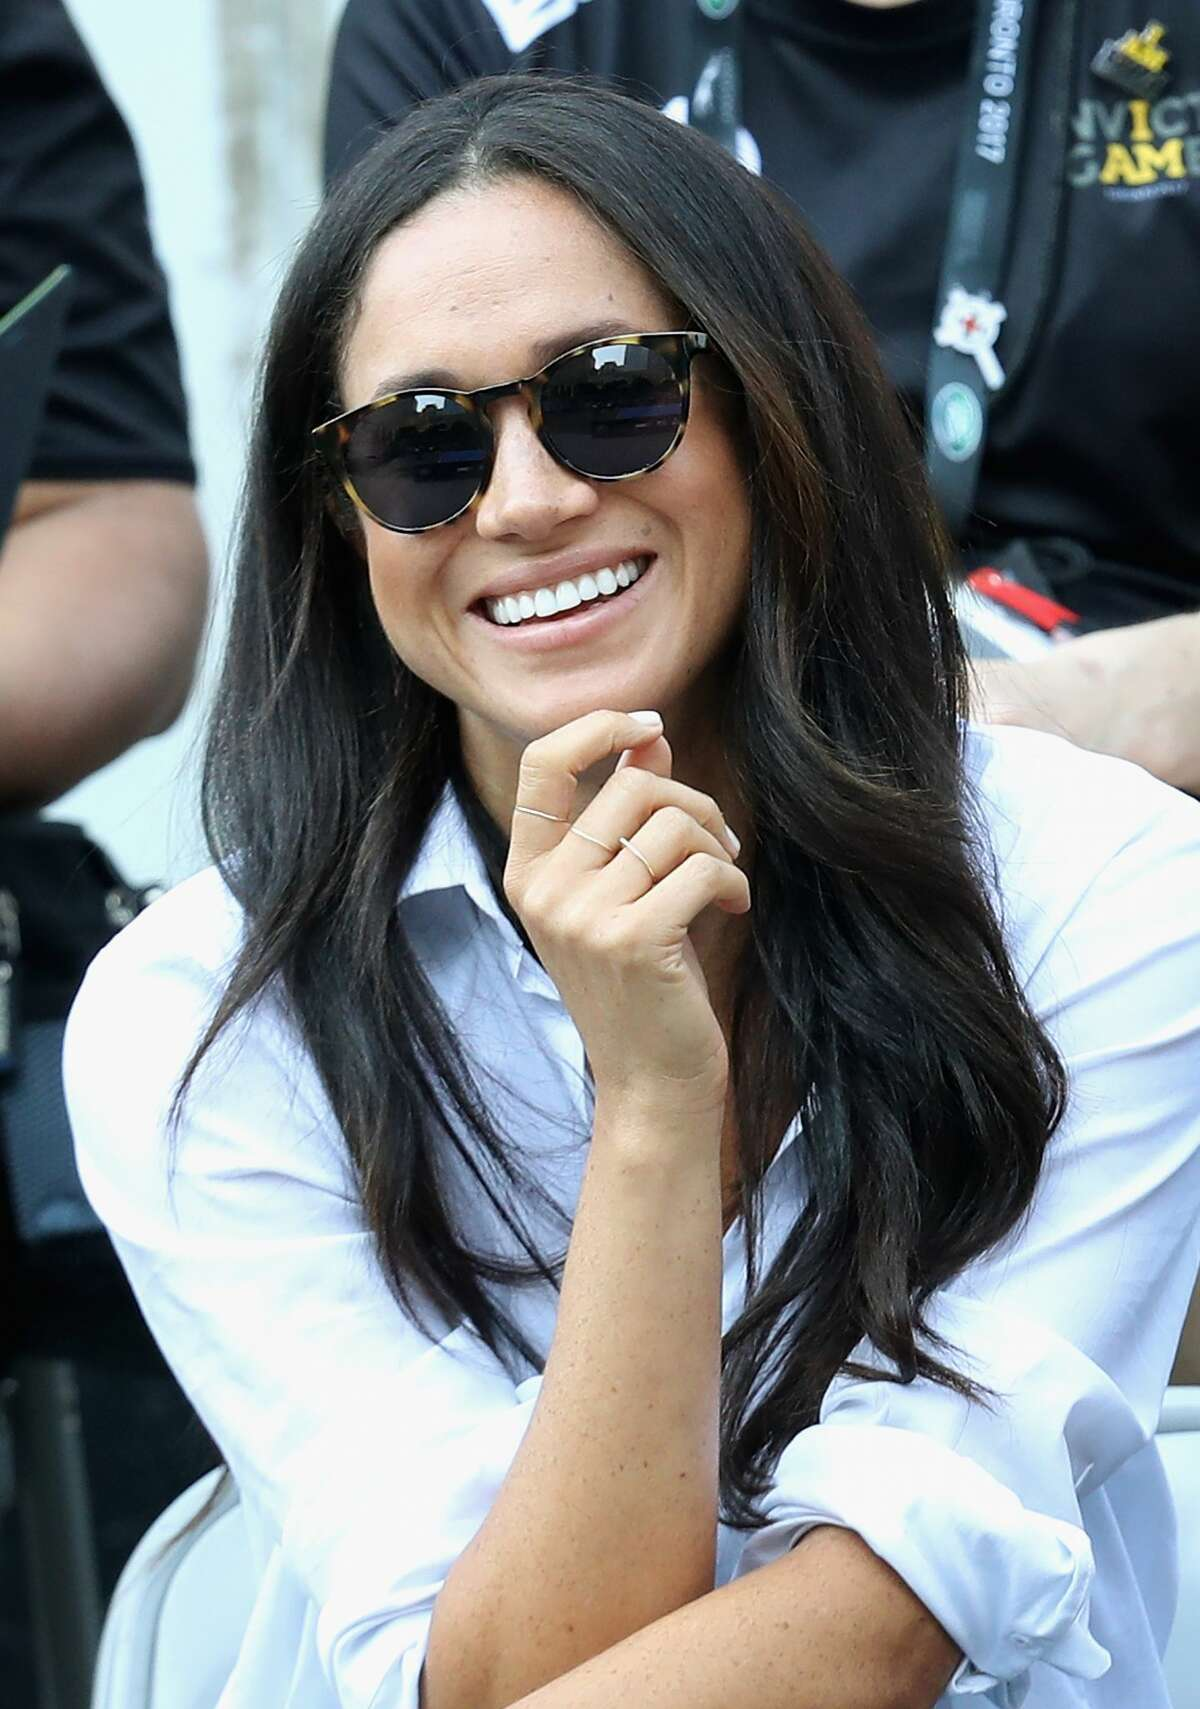 Meghan Markle attends a Wheelchair Tennis match during the Invictus Games 2017 at Nathan Philips Square on September 25, 2017 in Toronto.